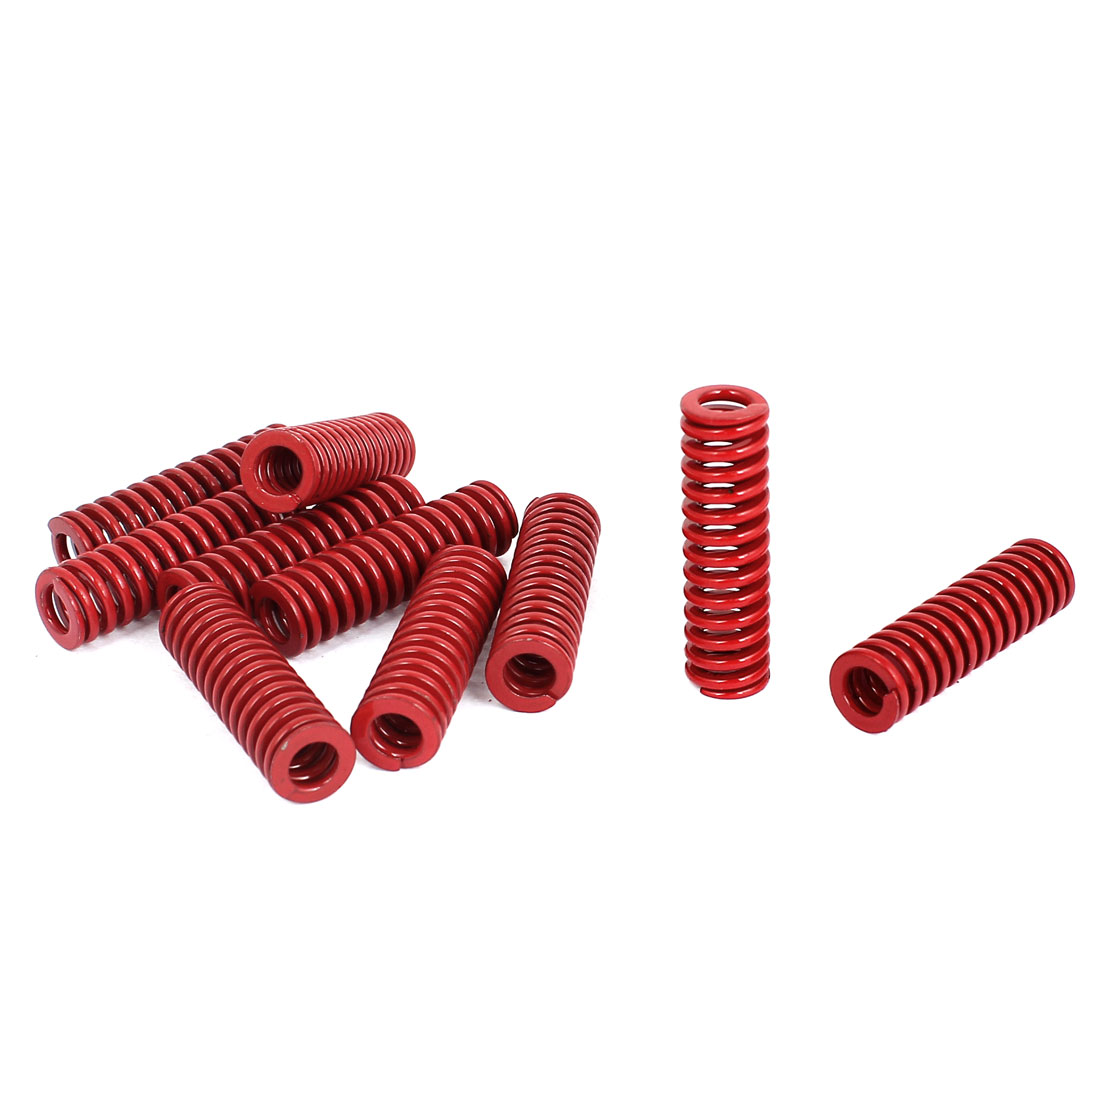 12mm OD 40mm Long Medium Load Stamping Compression Mold Die Spring Red 10pcs